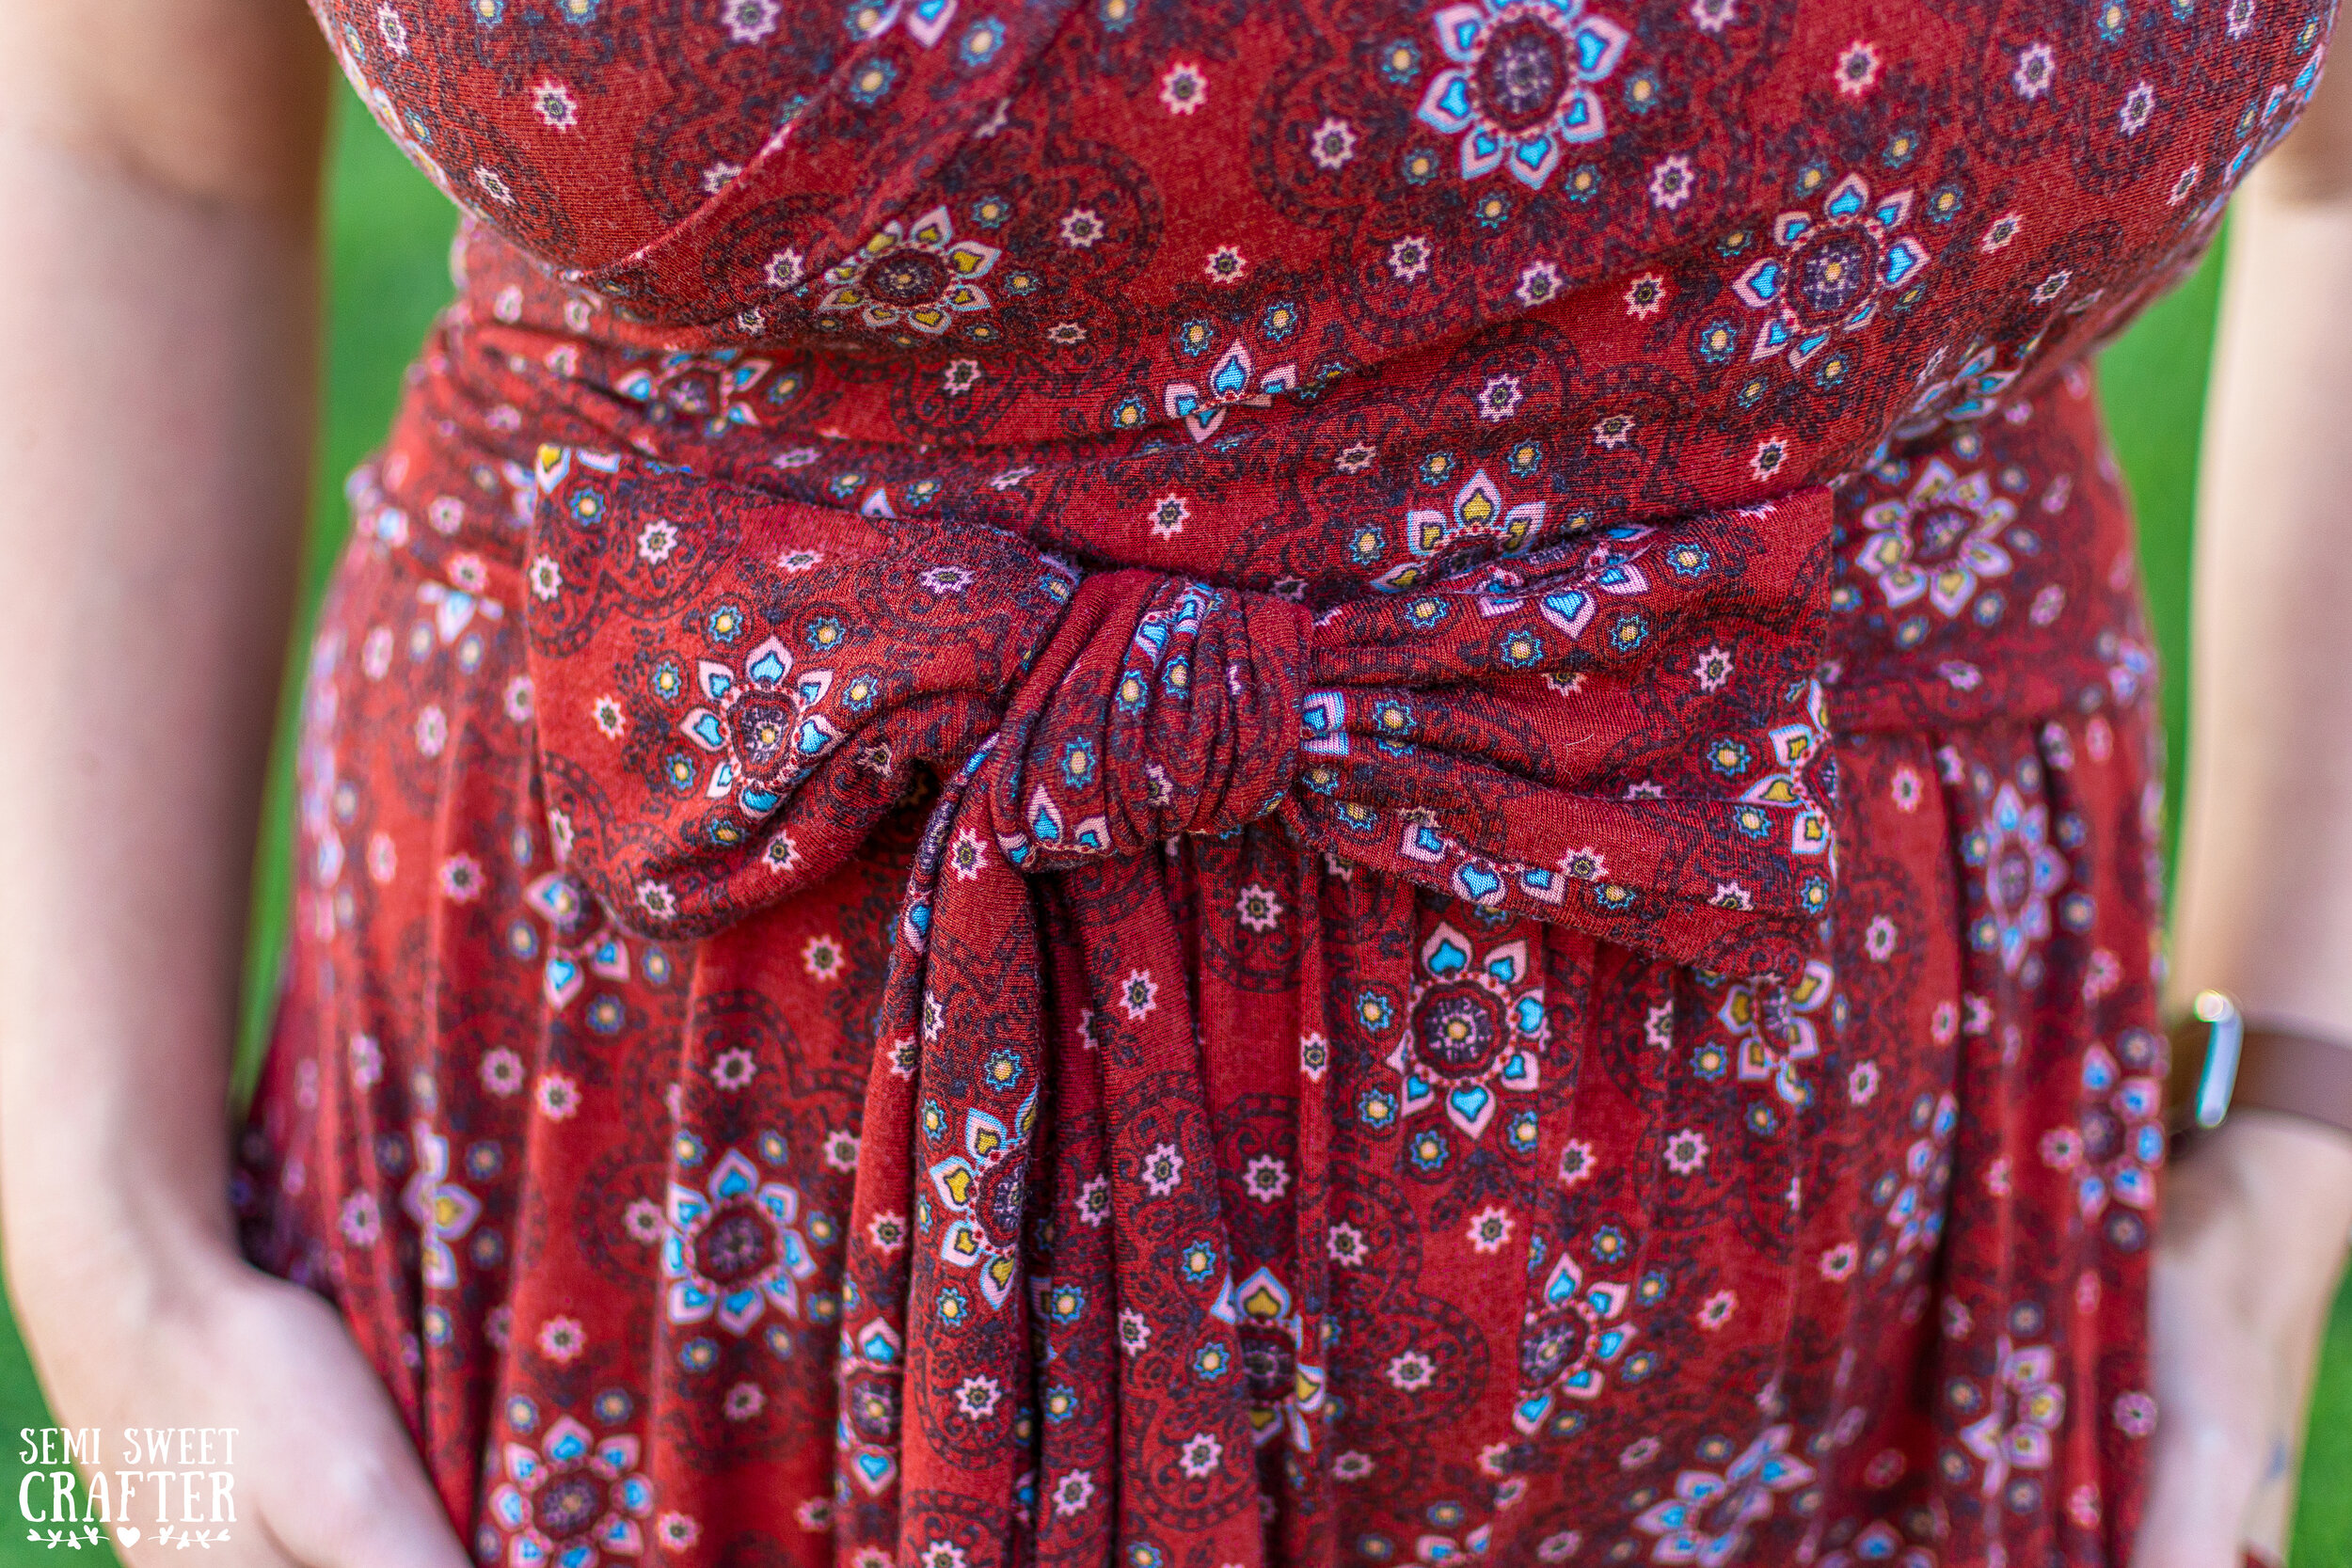 South Shore Romper: Sewing Project by Semi Sweet Crafter